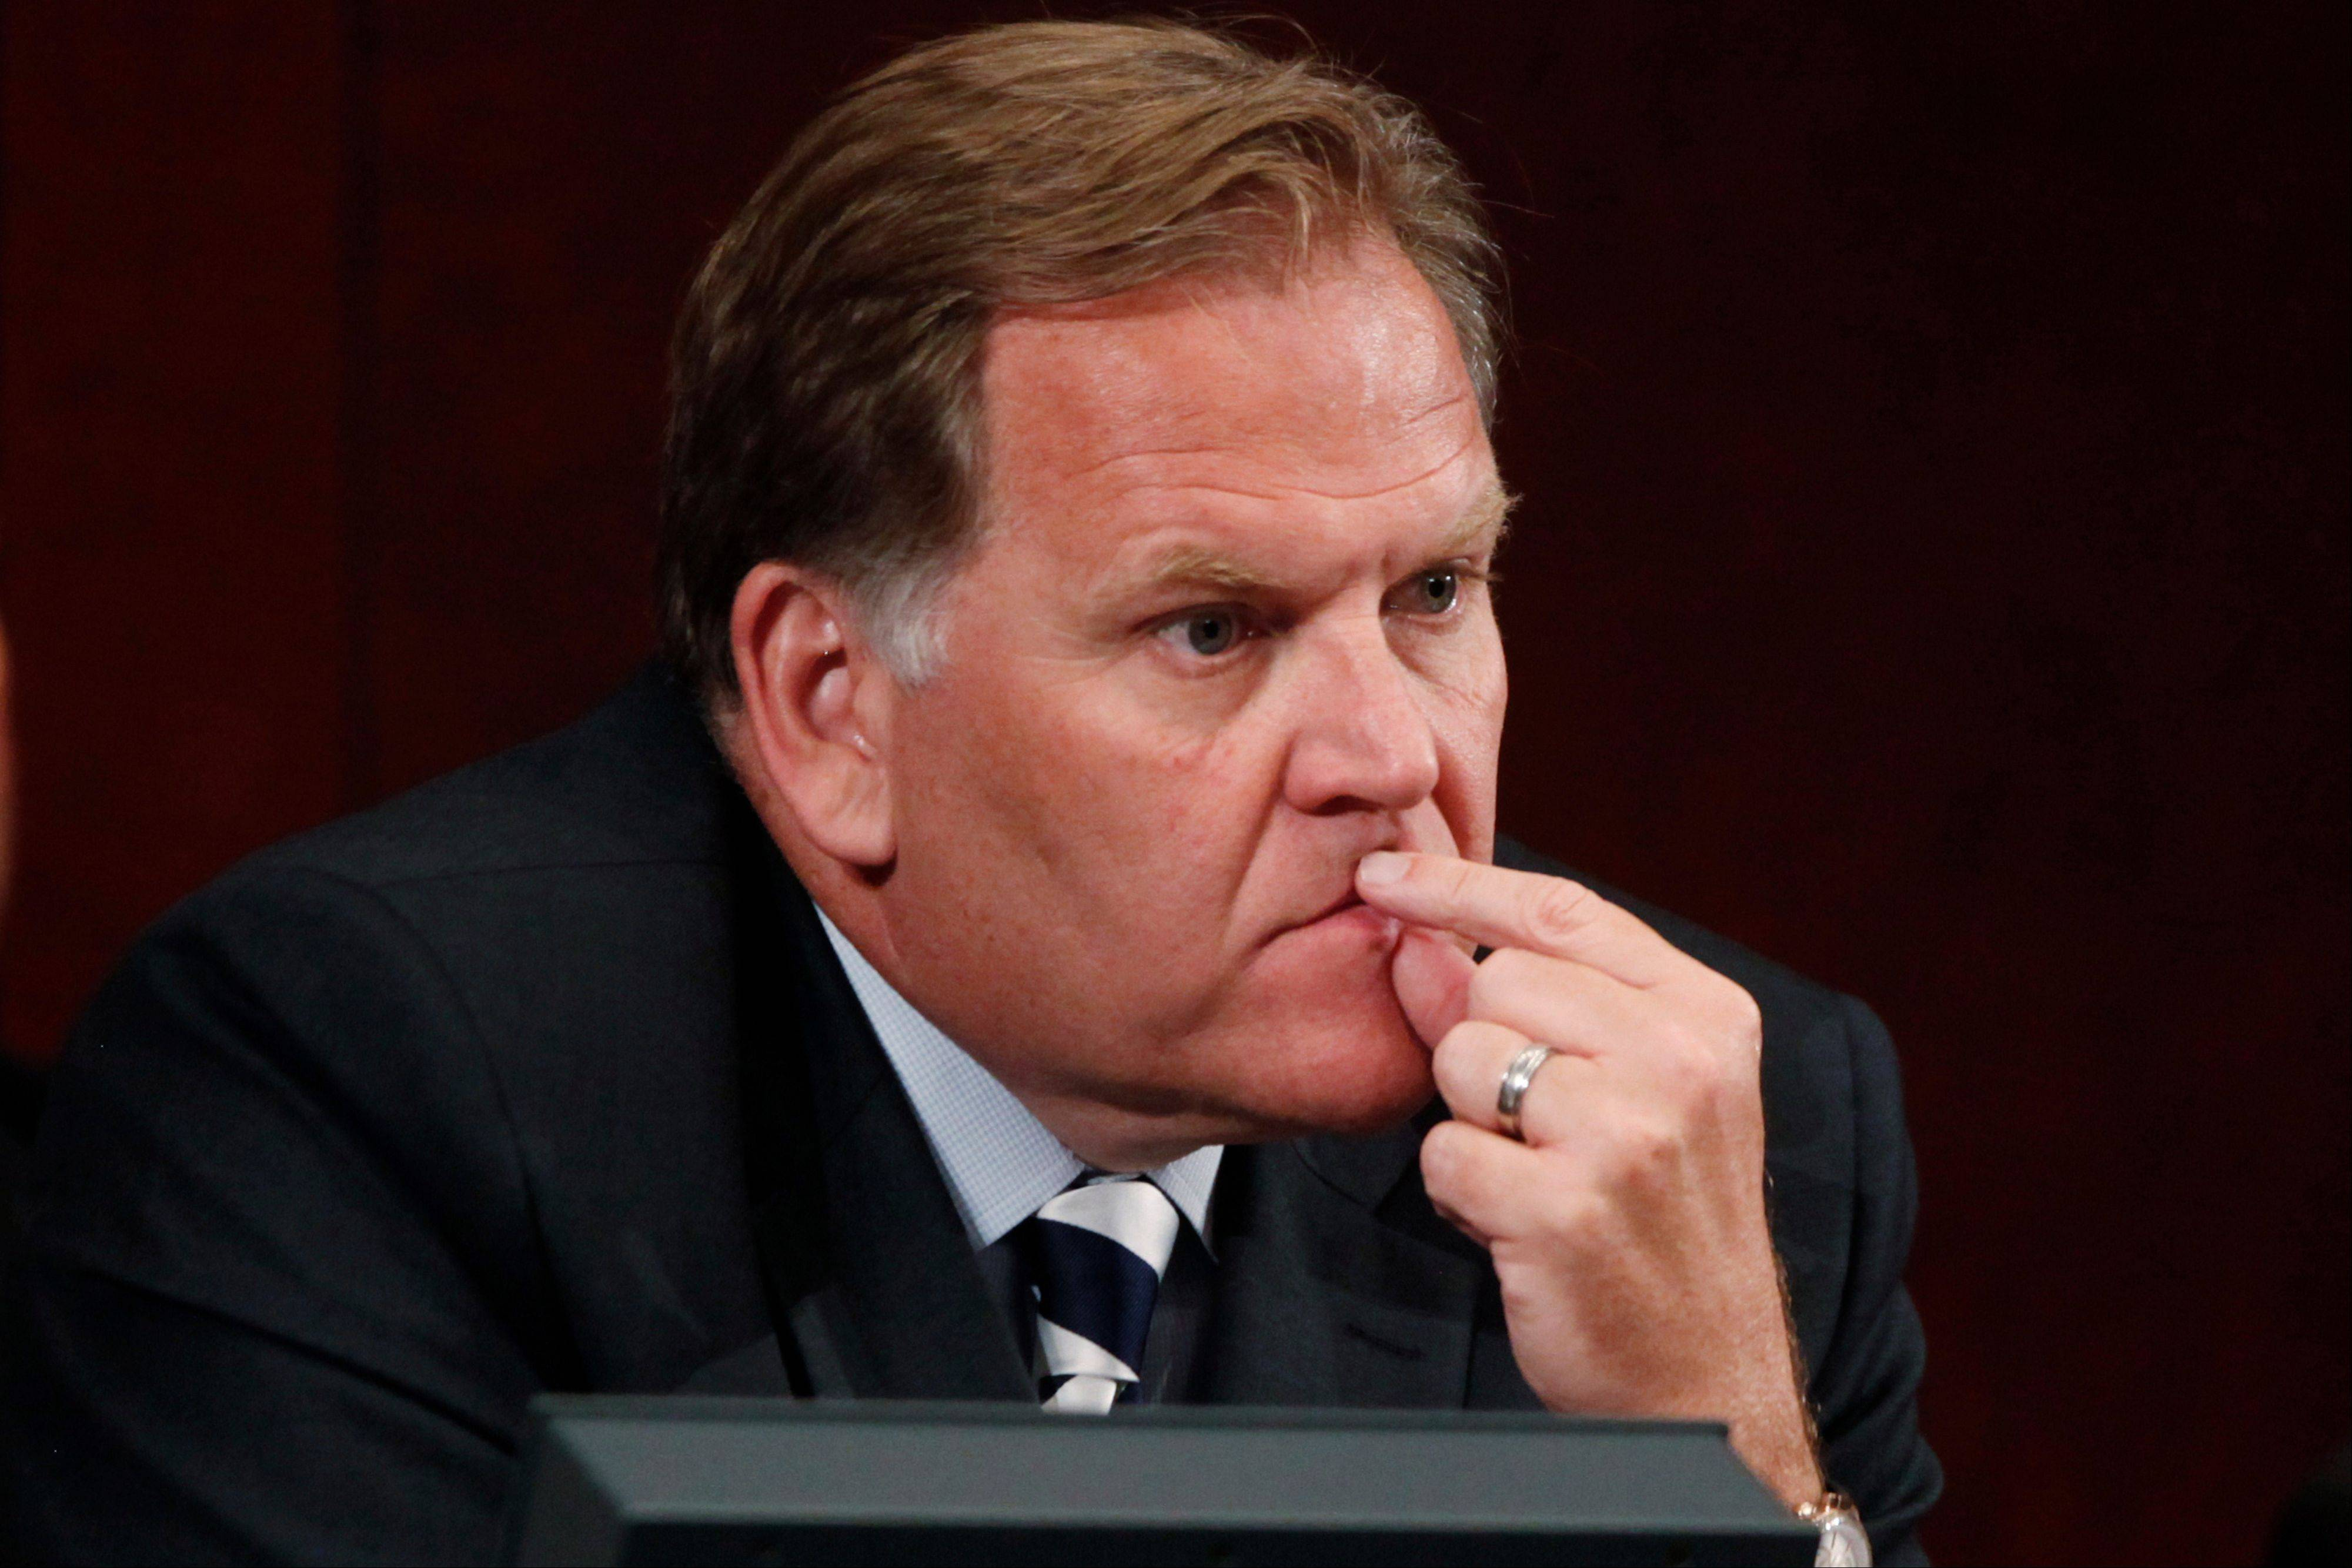 House Intelligence Committee Chairman Rep. Mike Rogers on Sunday condemned former National Security Agency contractor Edward Snowden as a �thief� and said he may have had help from Russia.